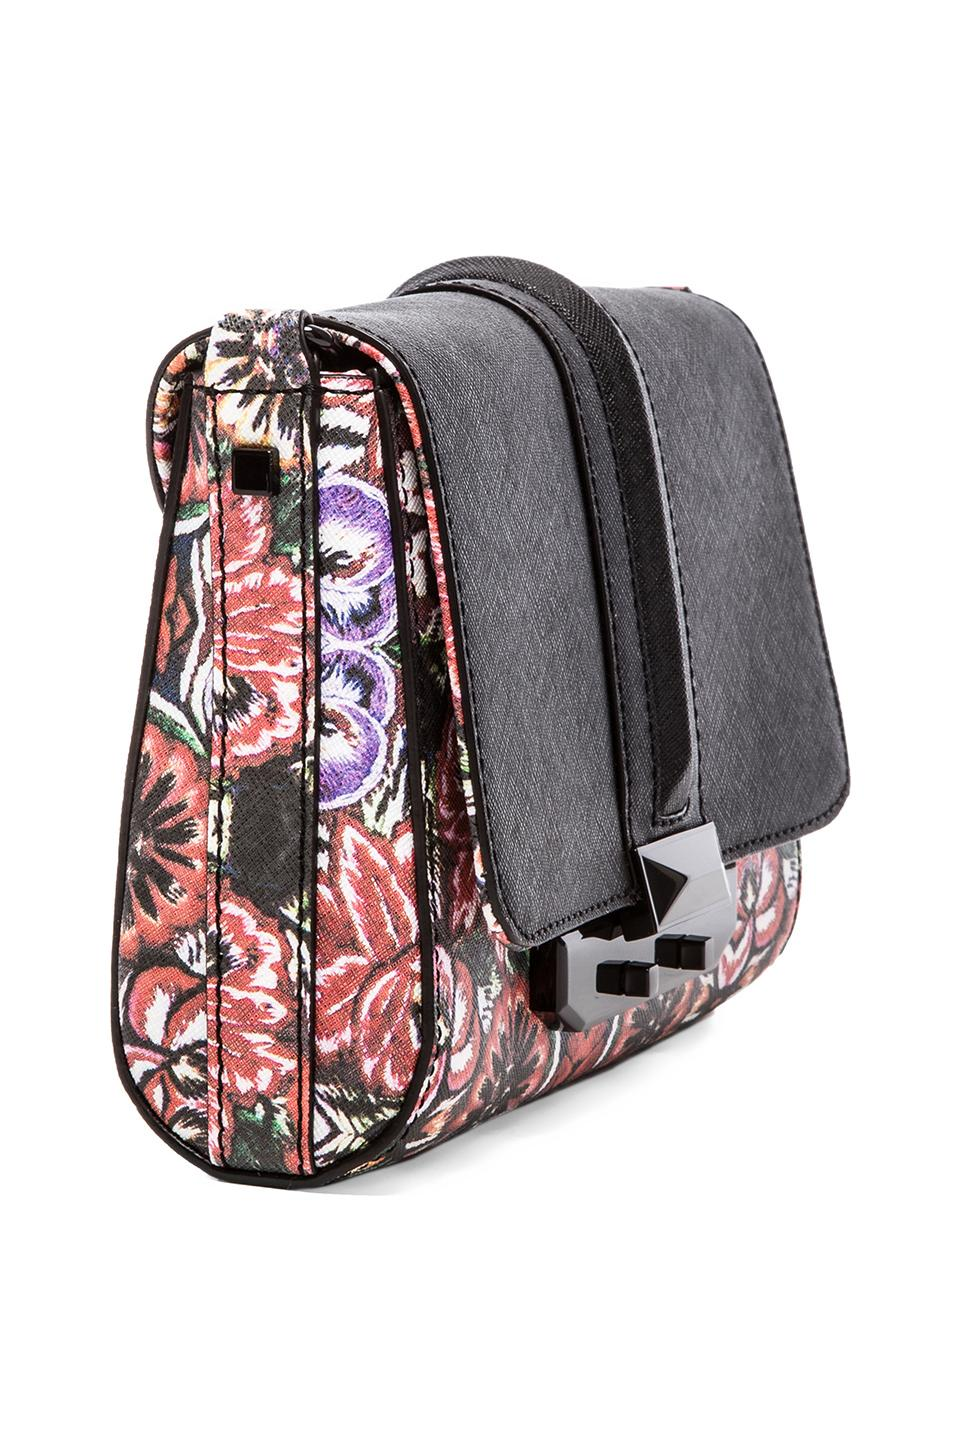 Rebecca Minkoff Leo Crossbody in Mexi Flower Print | REVOLVE